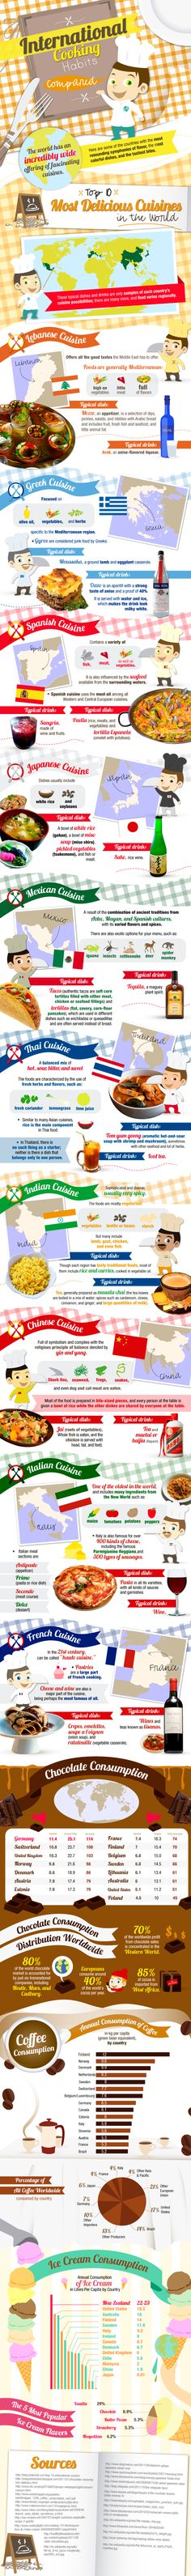 Love this Infographic : International Cooking Habits Compared